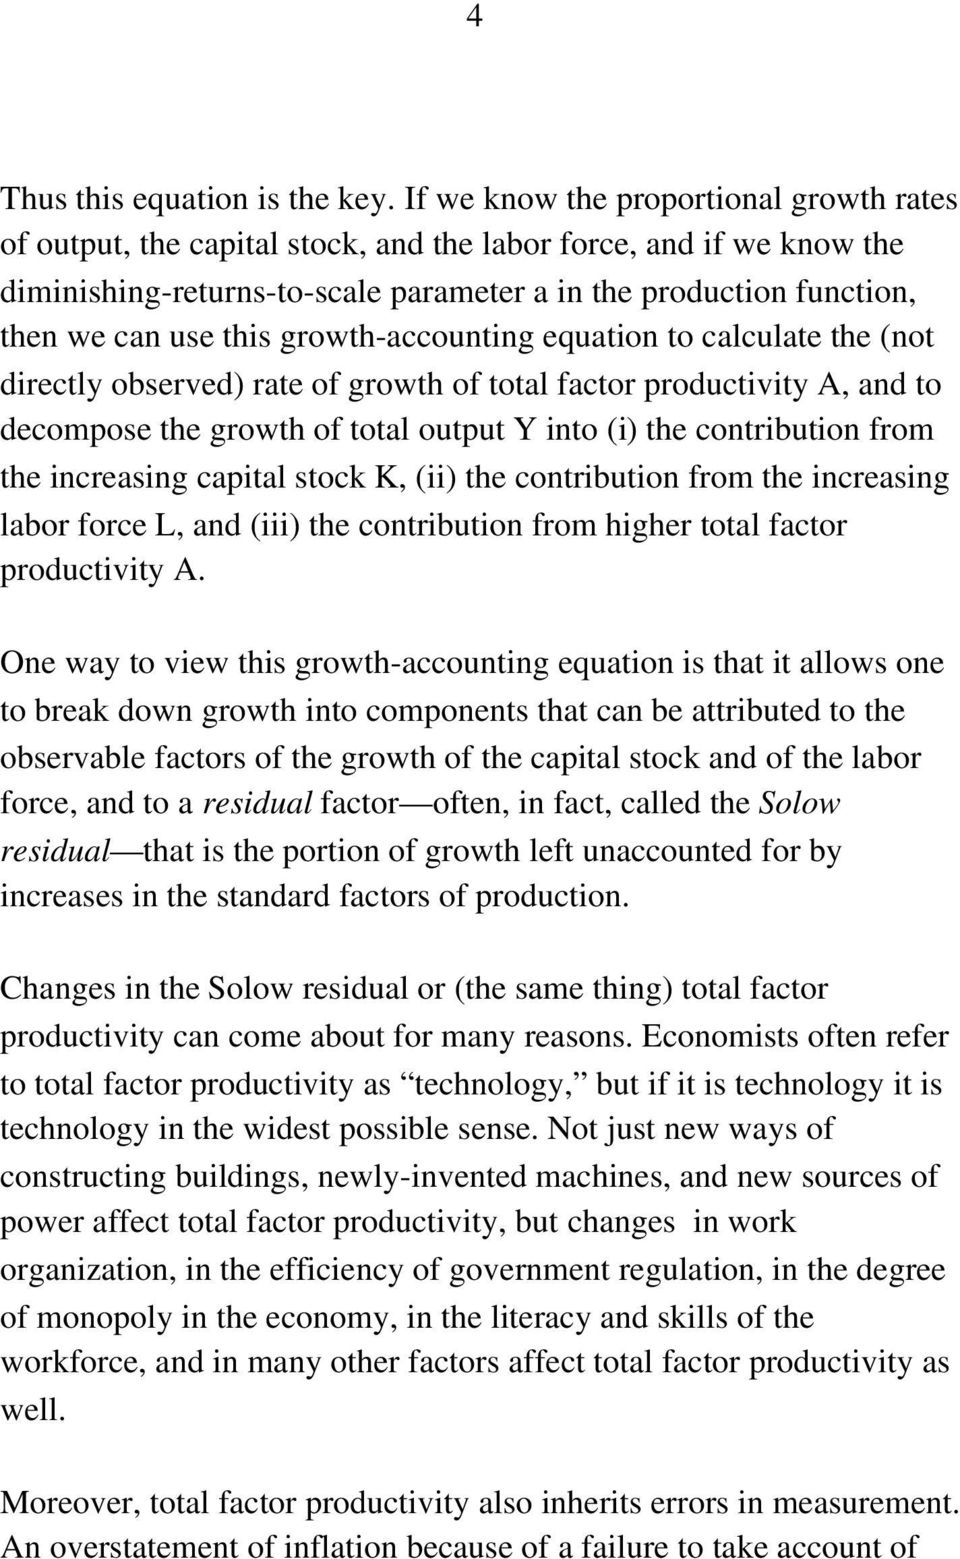 this growth-accounting equation to calculate the (not directly observed) rate of growth of total factor productivity A, and to decompose the growth of total output Y into (i) the contribution from